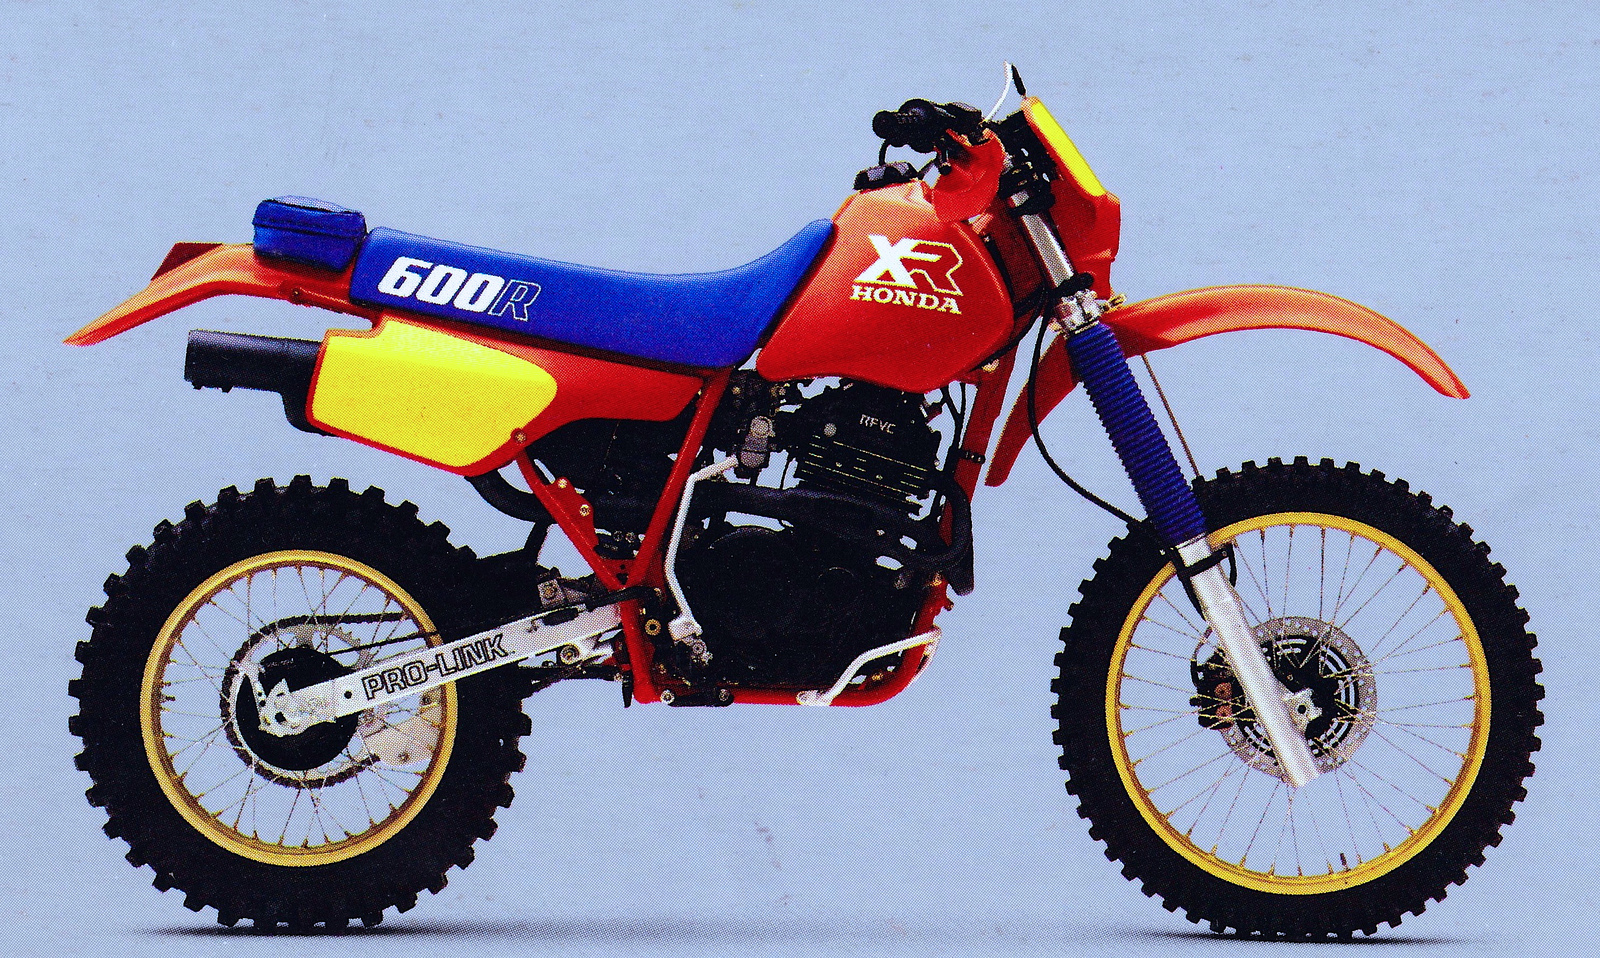 1986 Xr600r Pictures to Pin on Pinterest - PinsDaddy